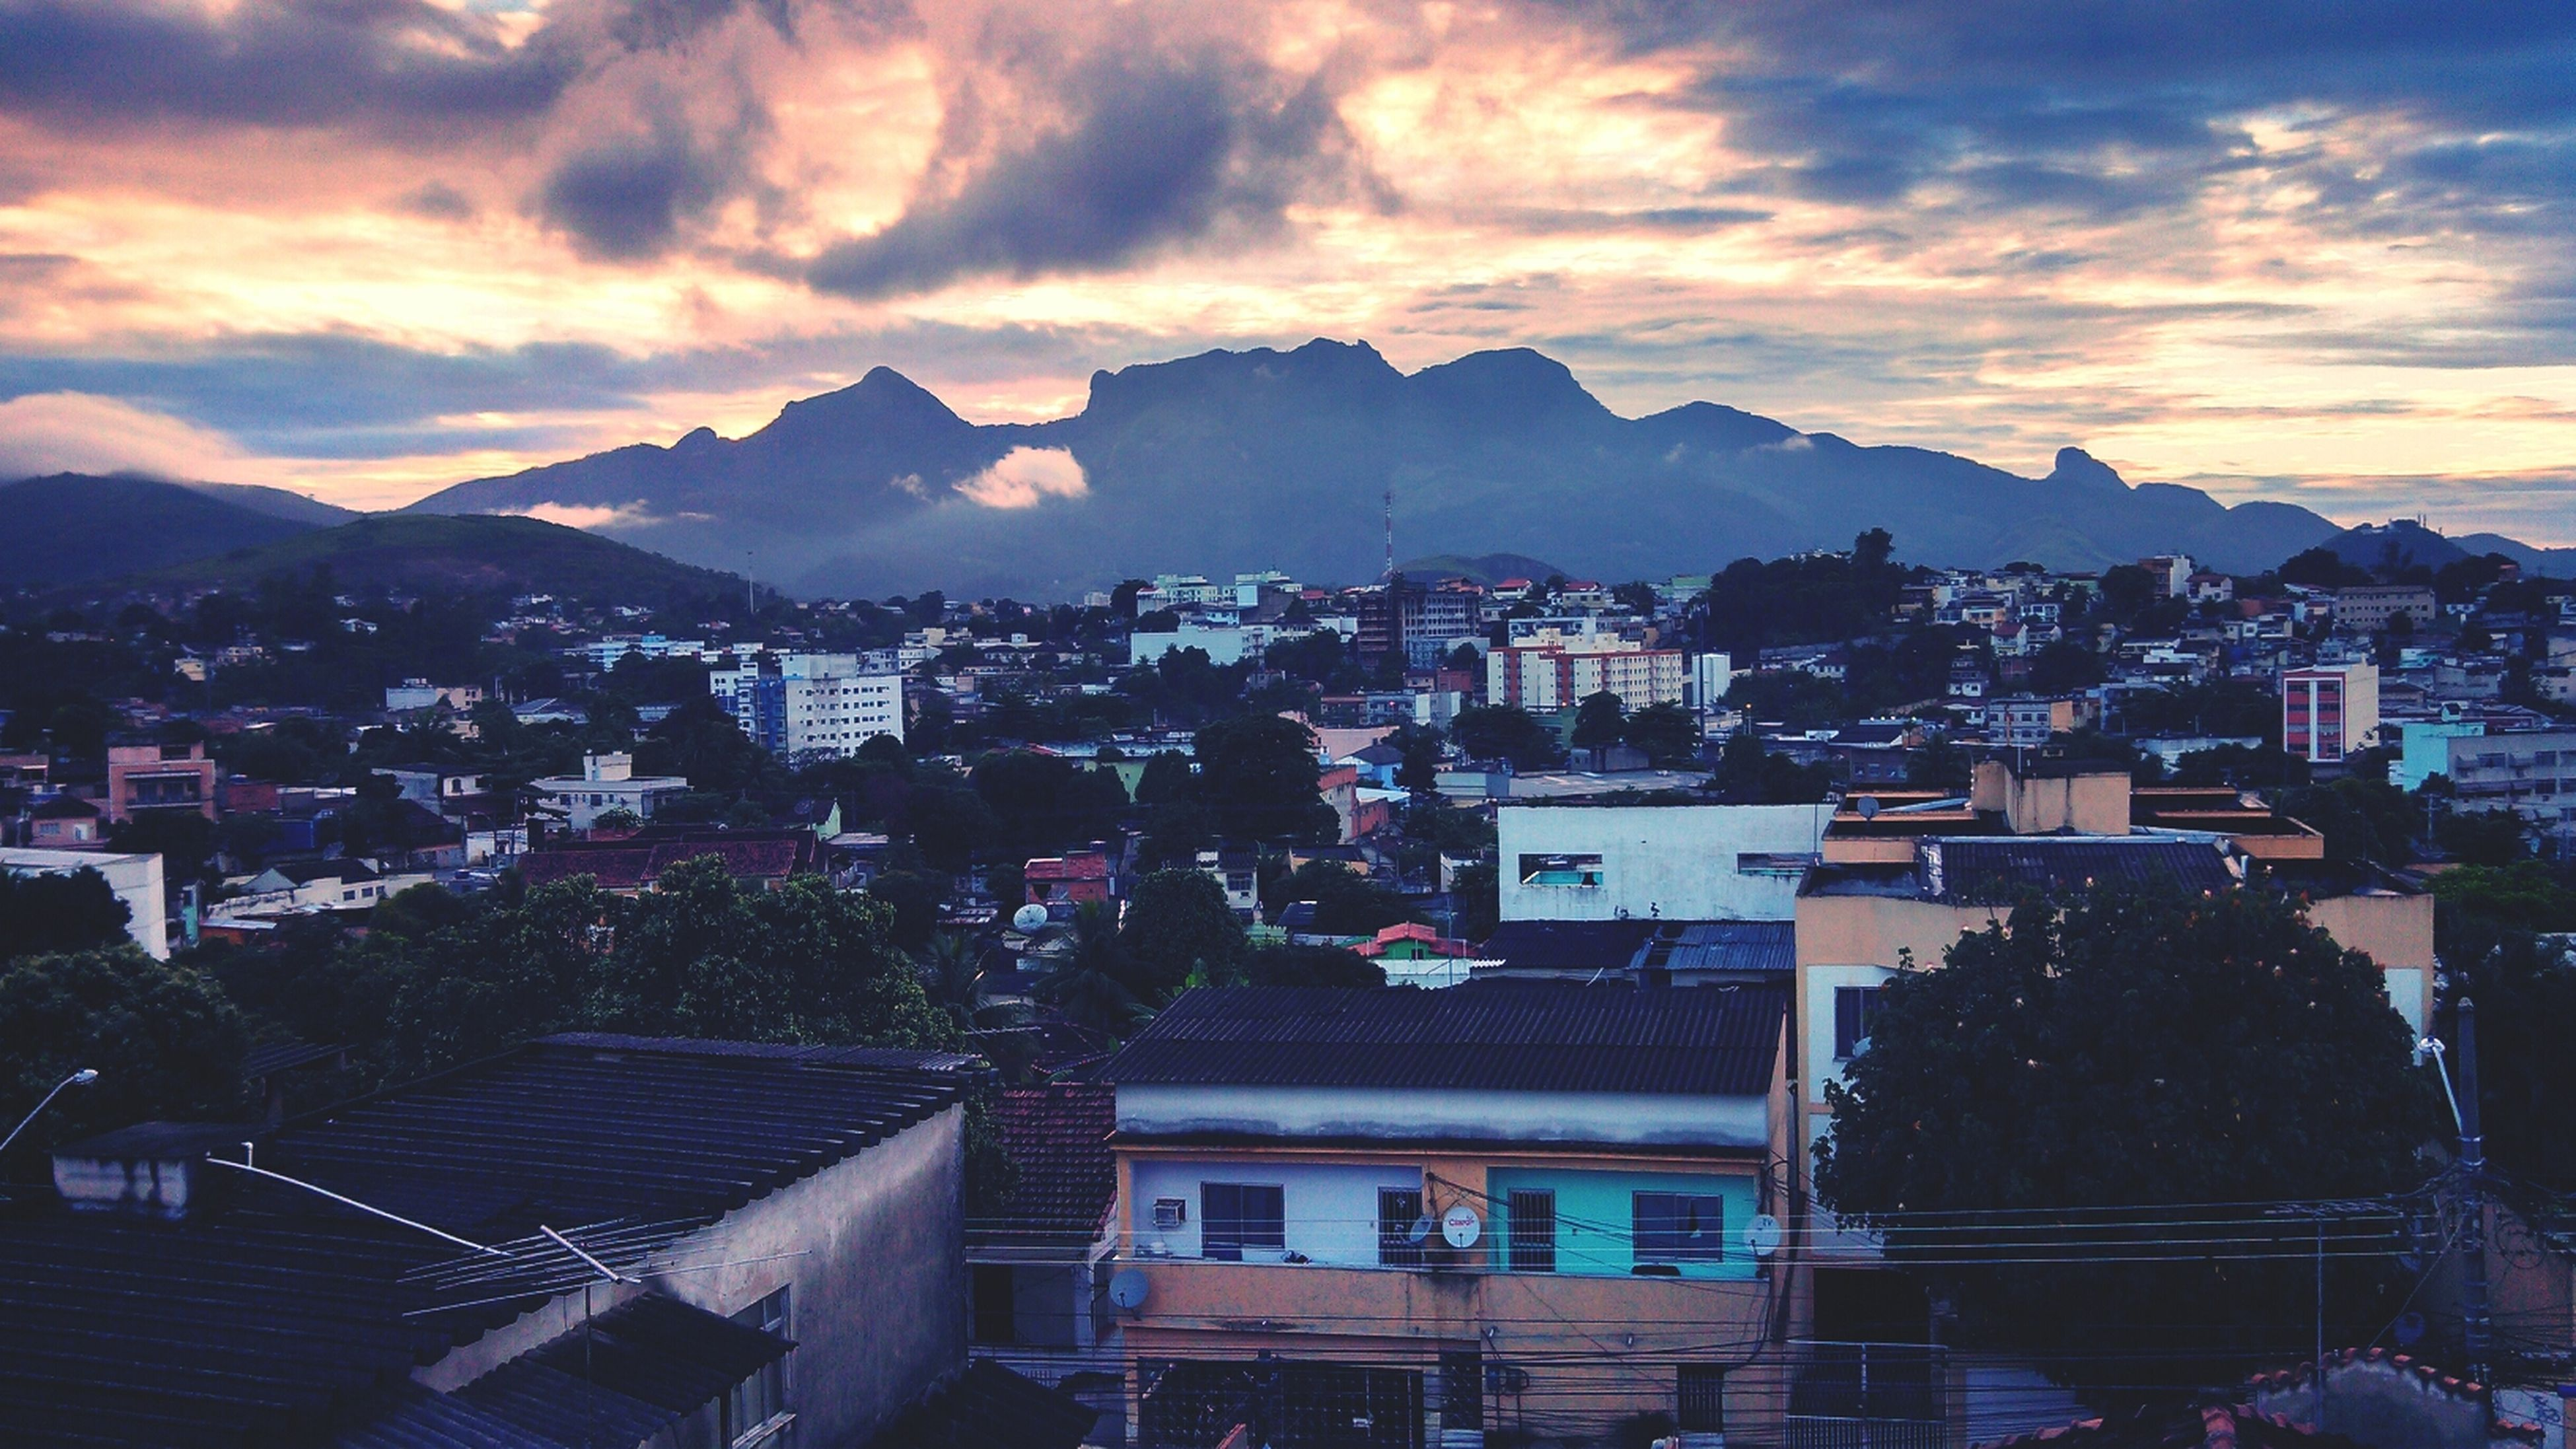 building exterior, architecture, built structure, mountain, cityscape, city, sunset, residential district, sky, residential building, residential structure, mountain range, crowded, high angle view, house, cloud - sky, town, townscape, community, cloud